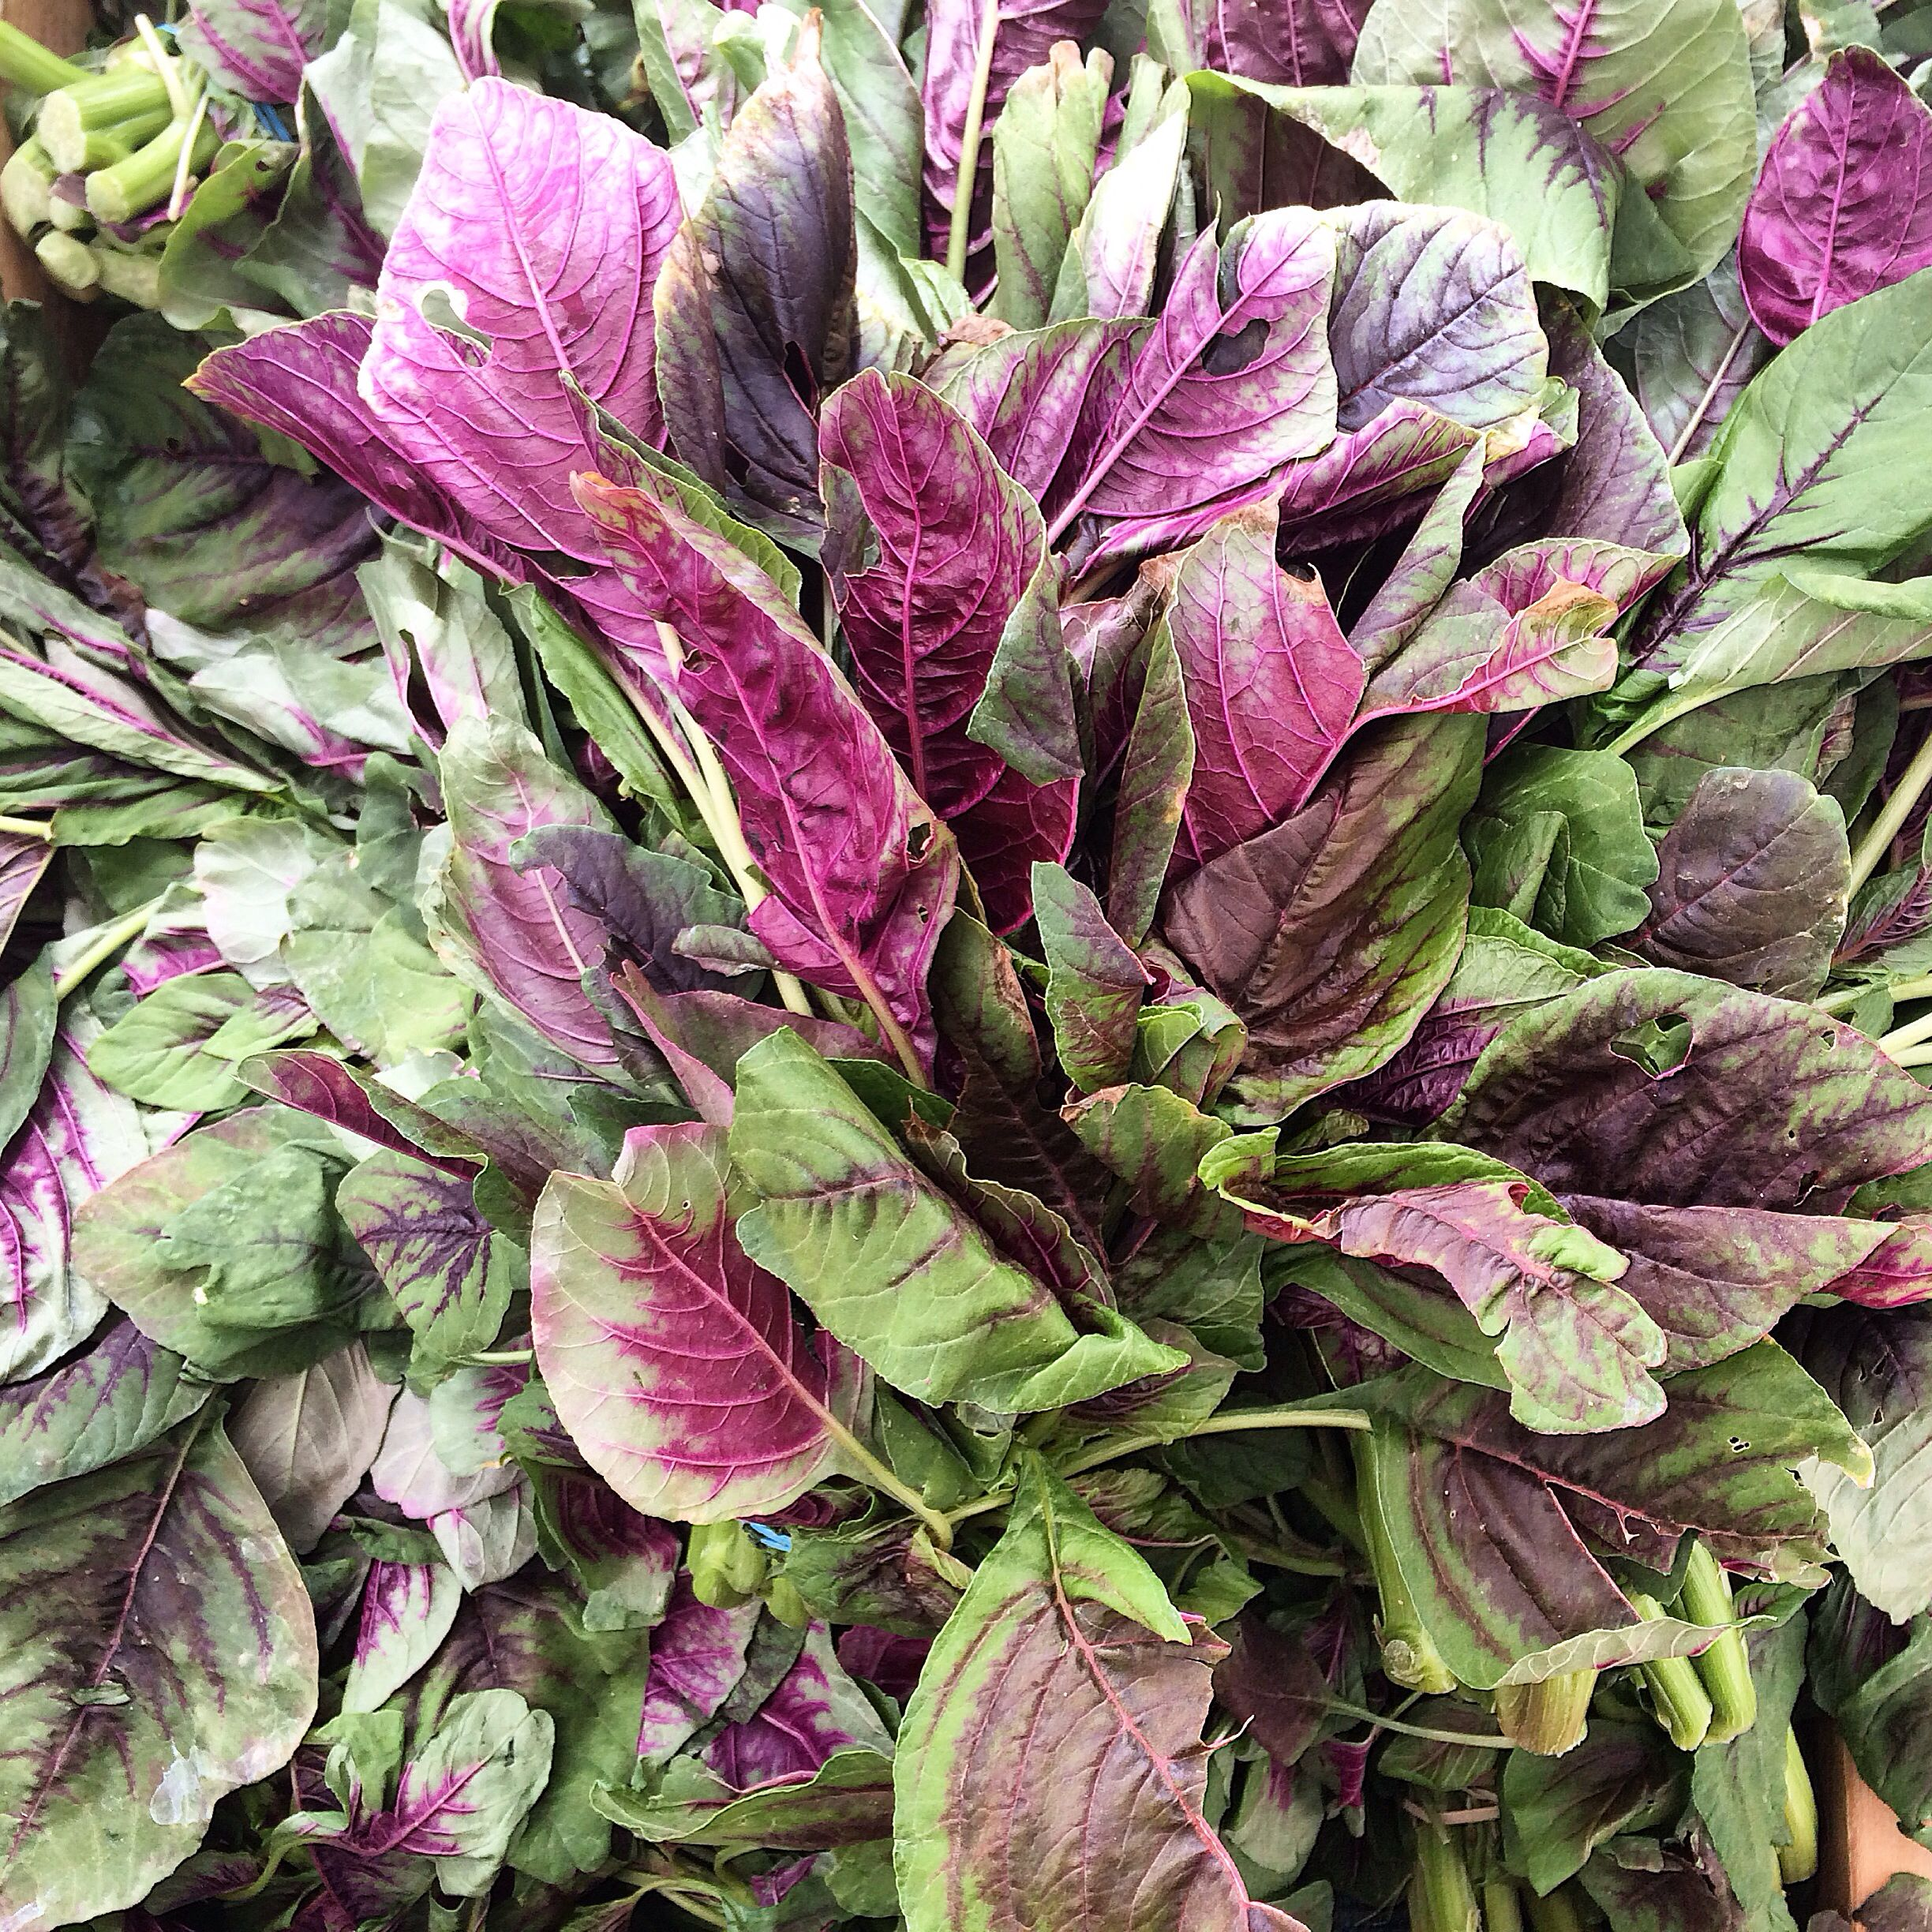 Beautiful amaranth greens from Vong Family Farm at the Berkeley Farmers Market.